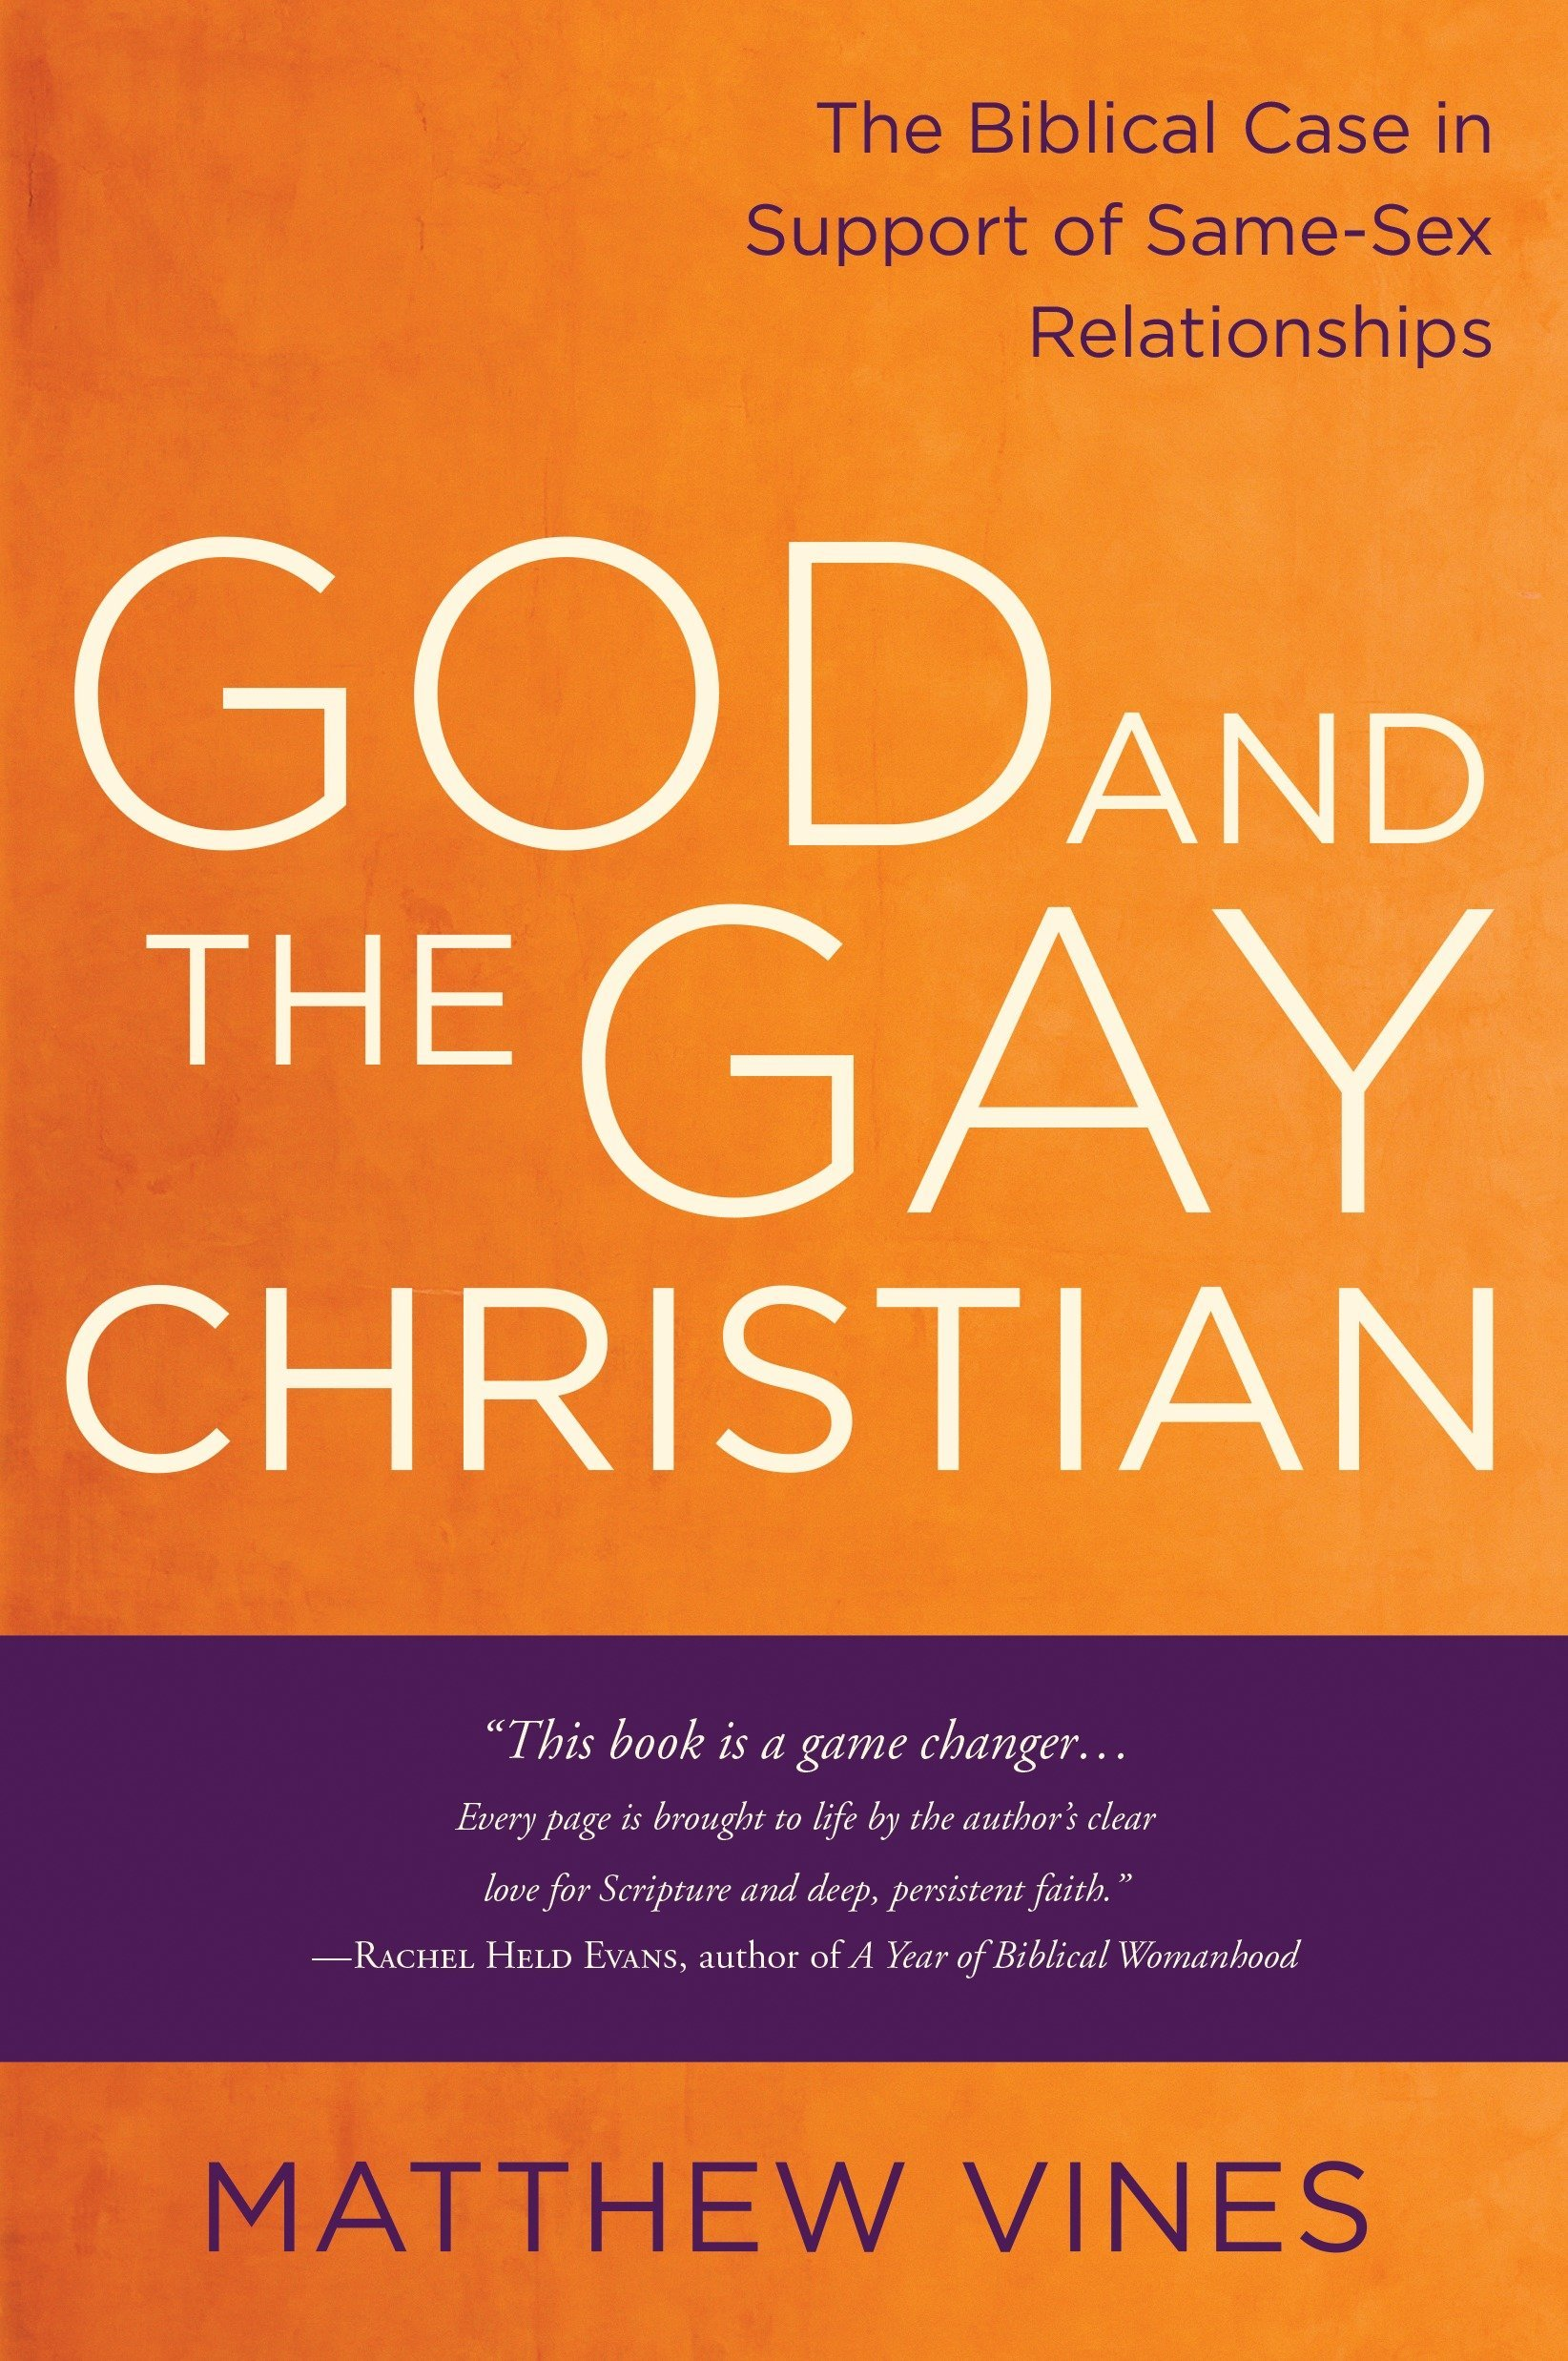 Homosexuality and christianity reconciled balance